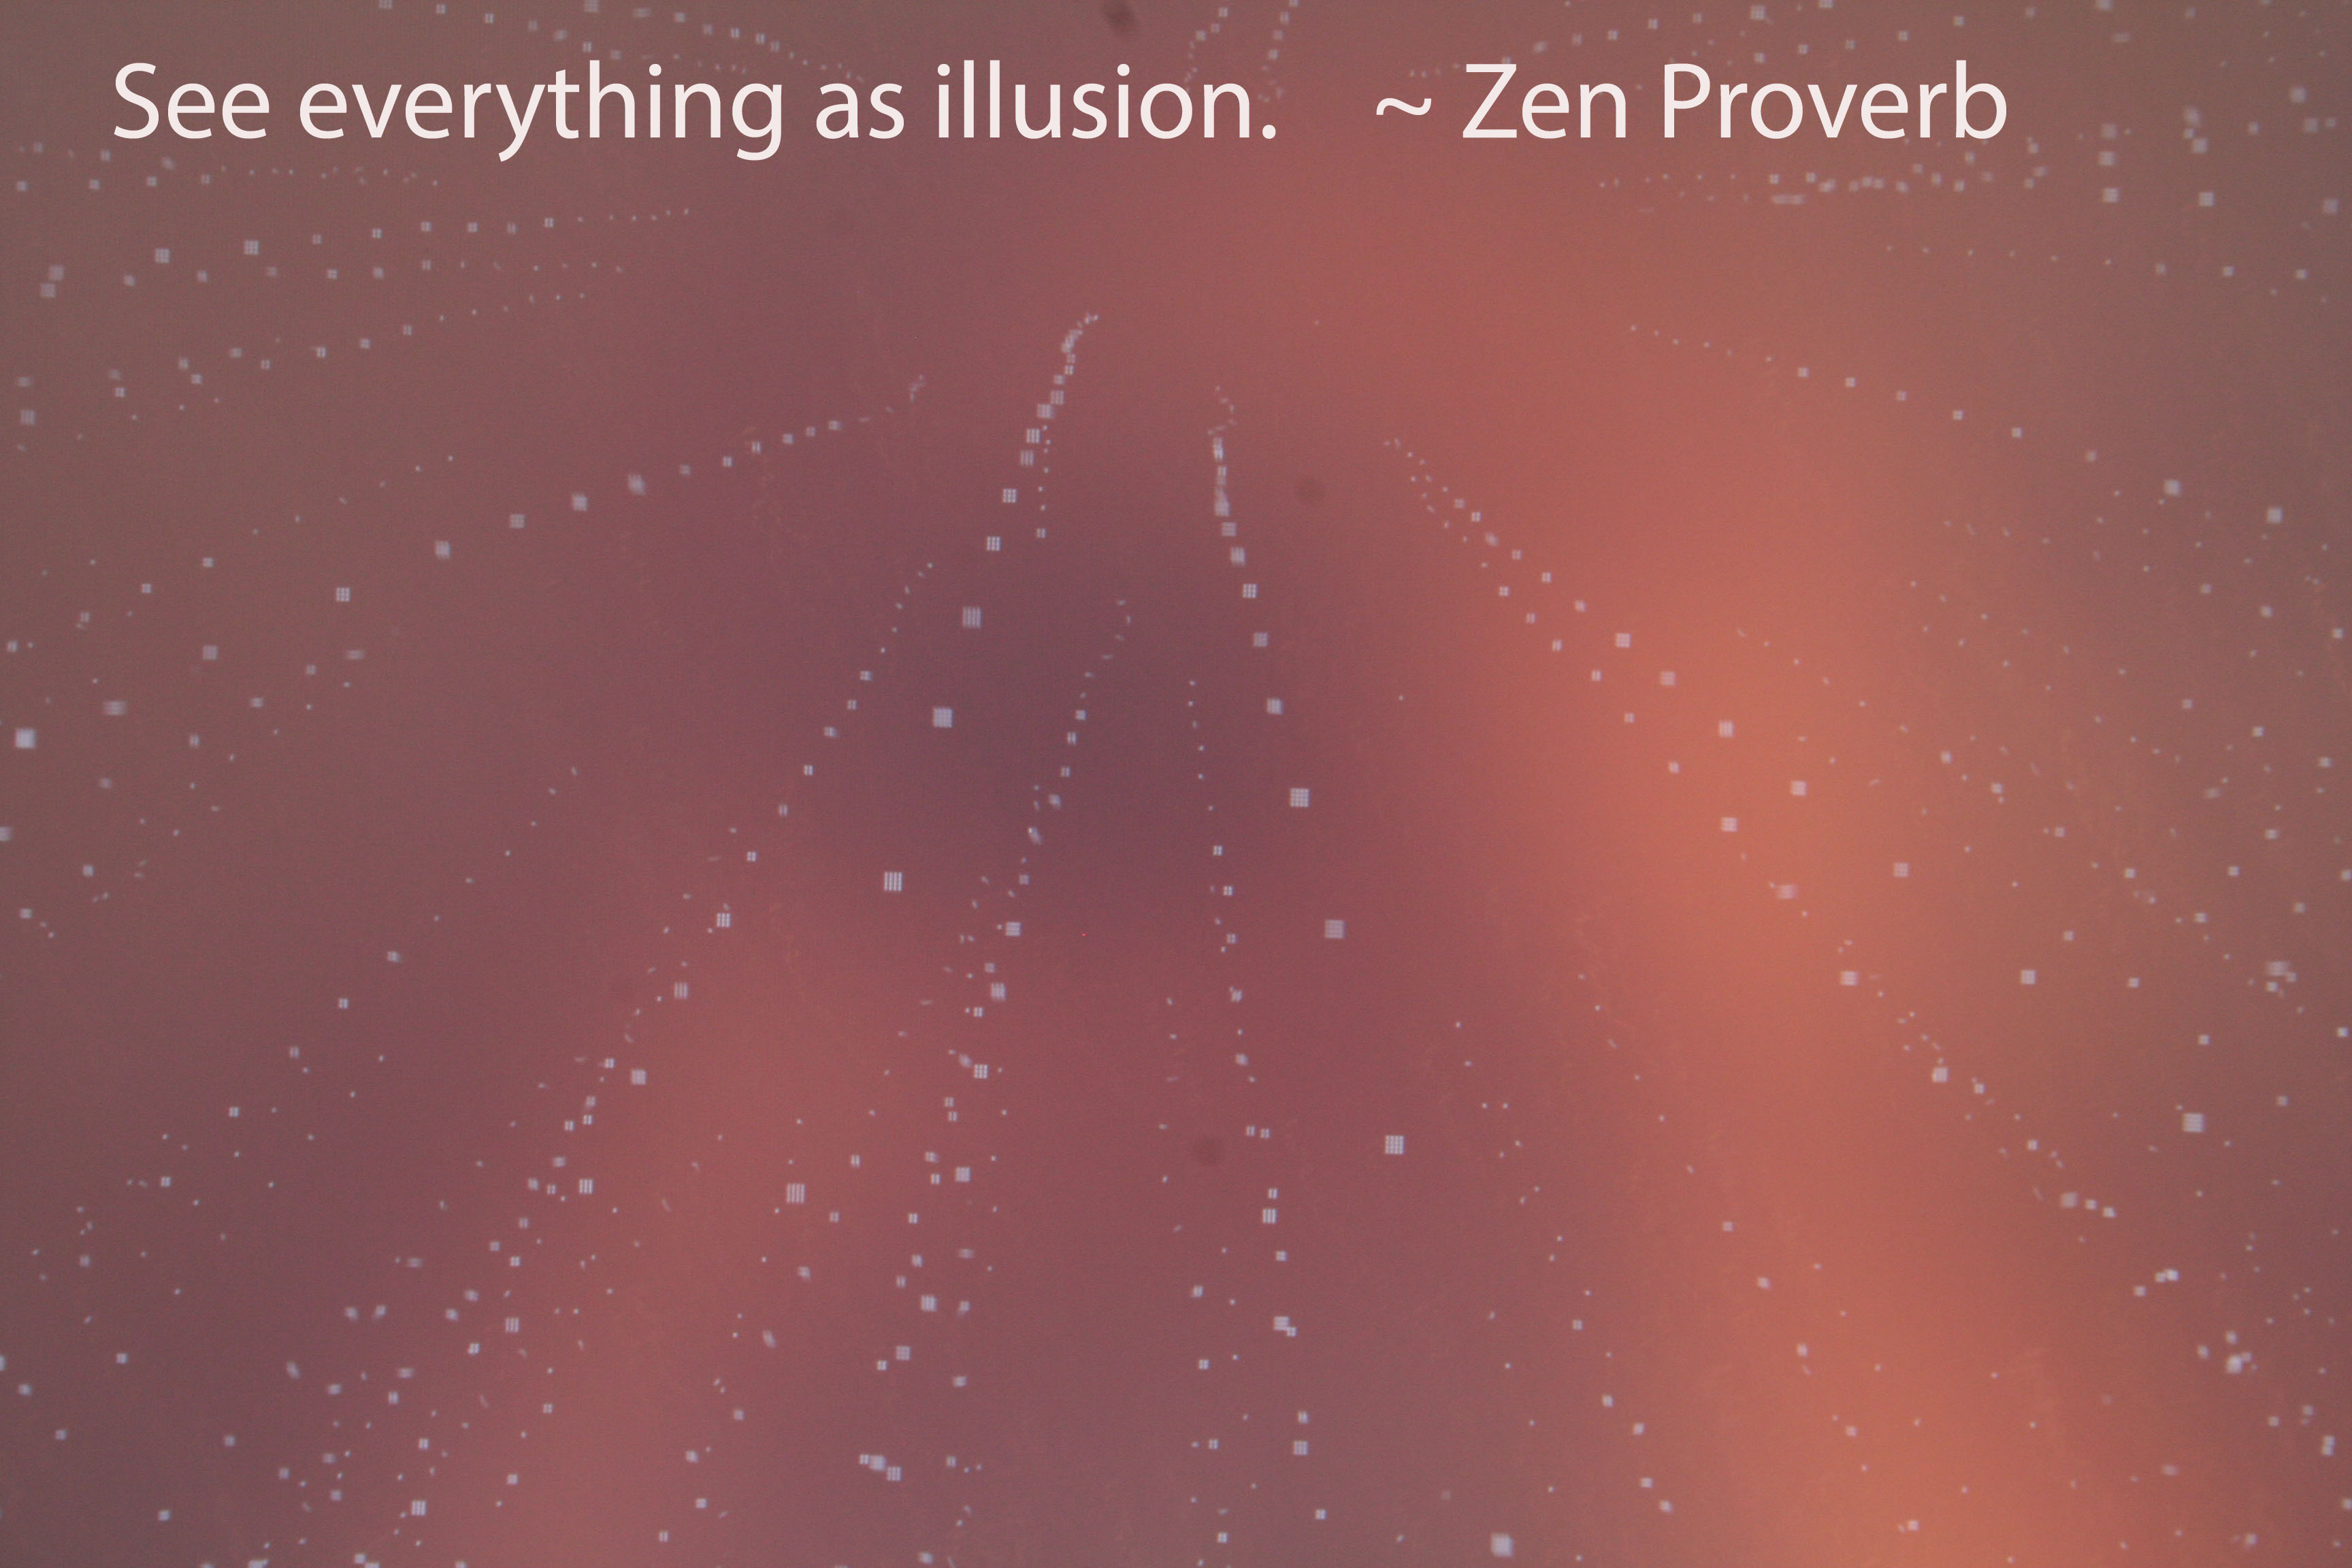 """See everything as illusion."" - Zen proverb written on photo of slow motion rain."